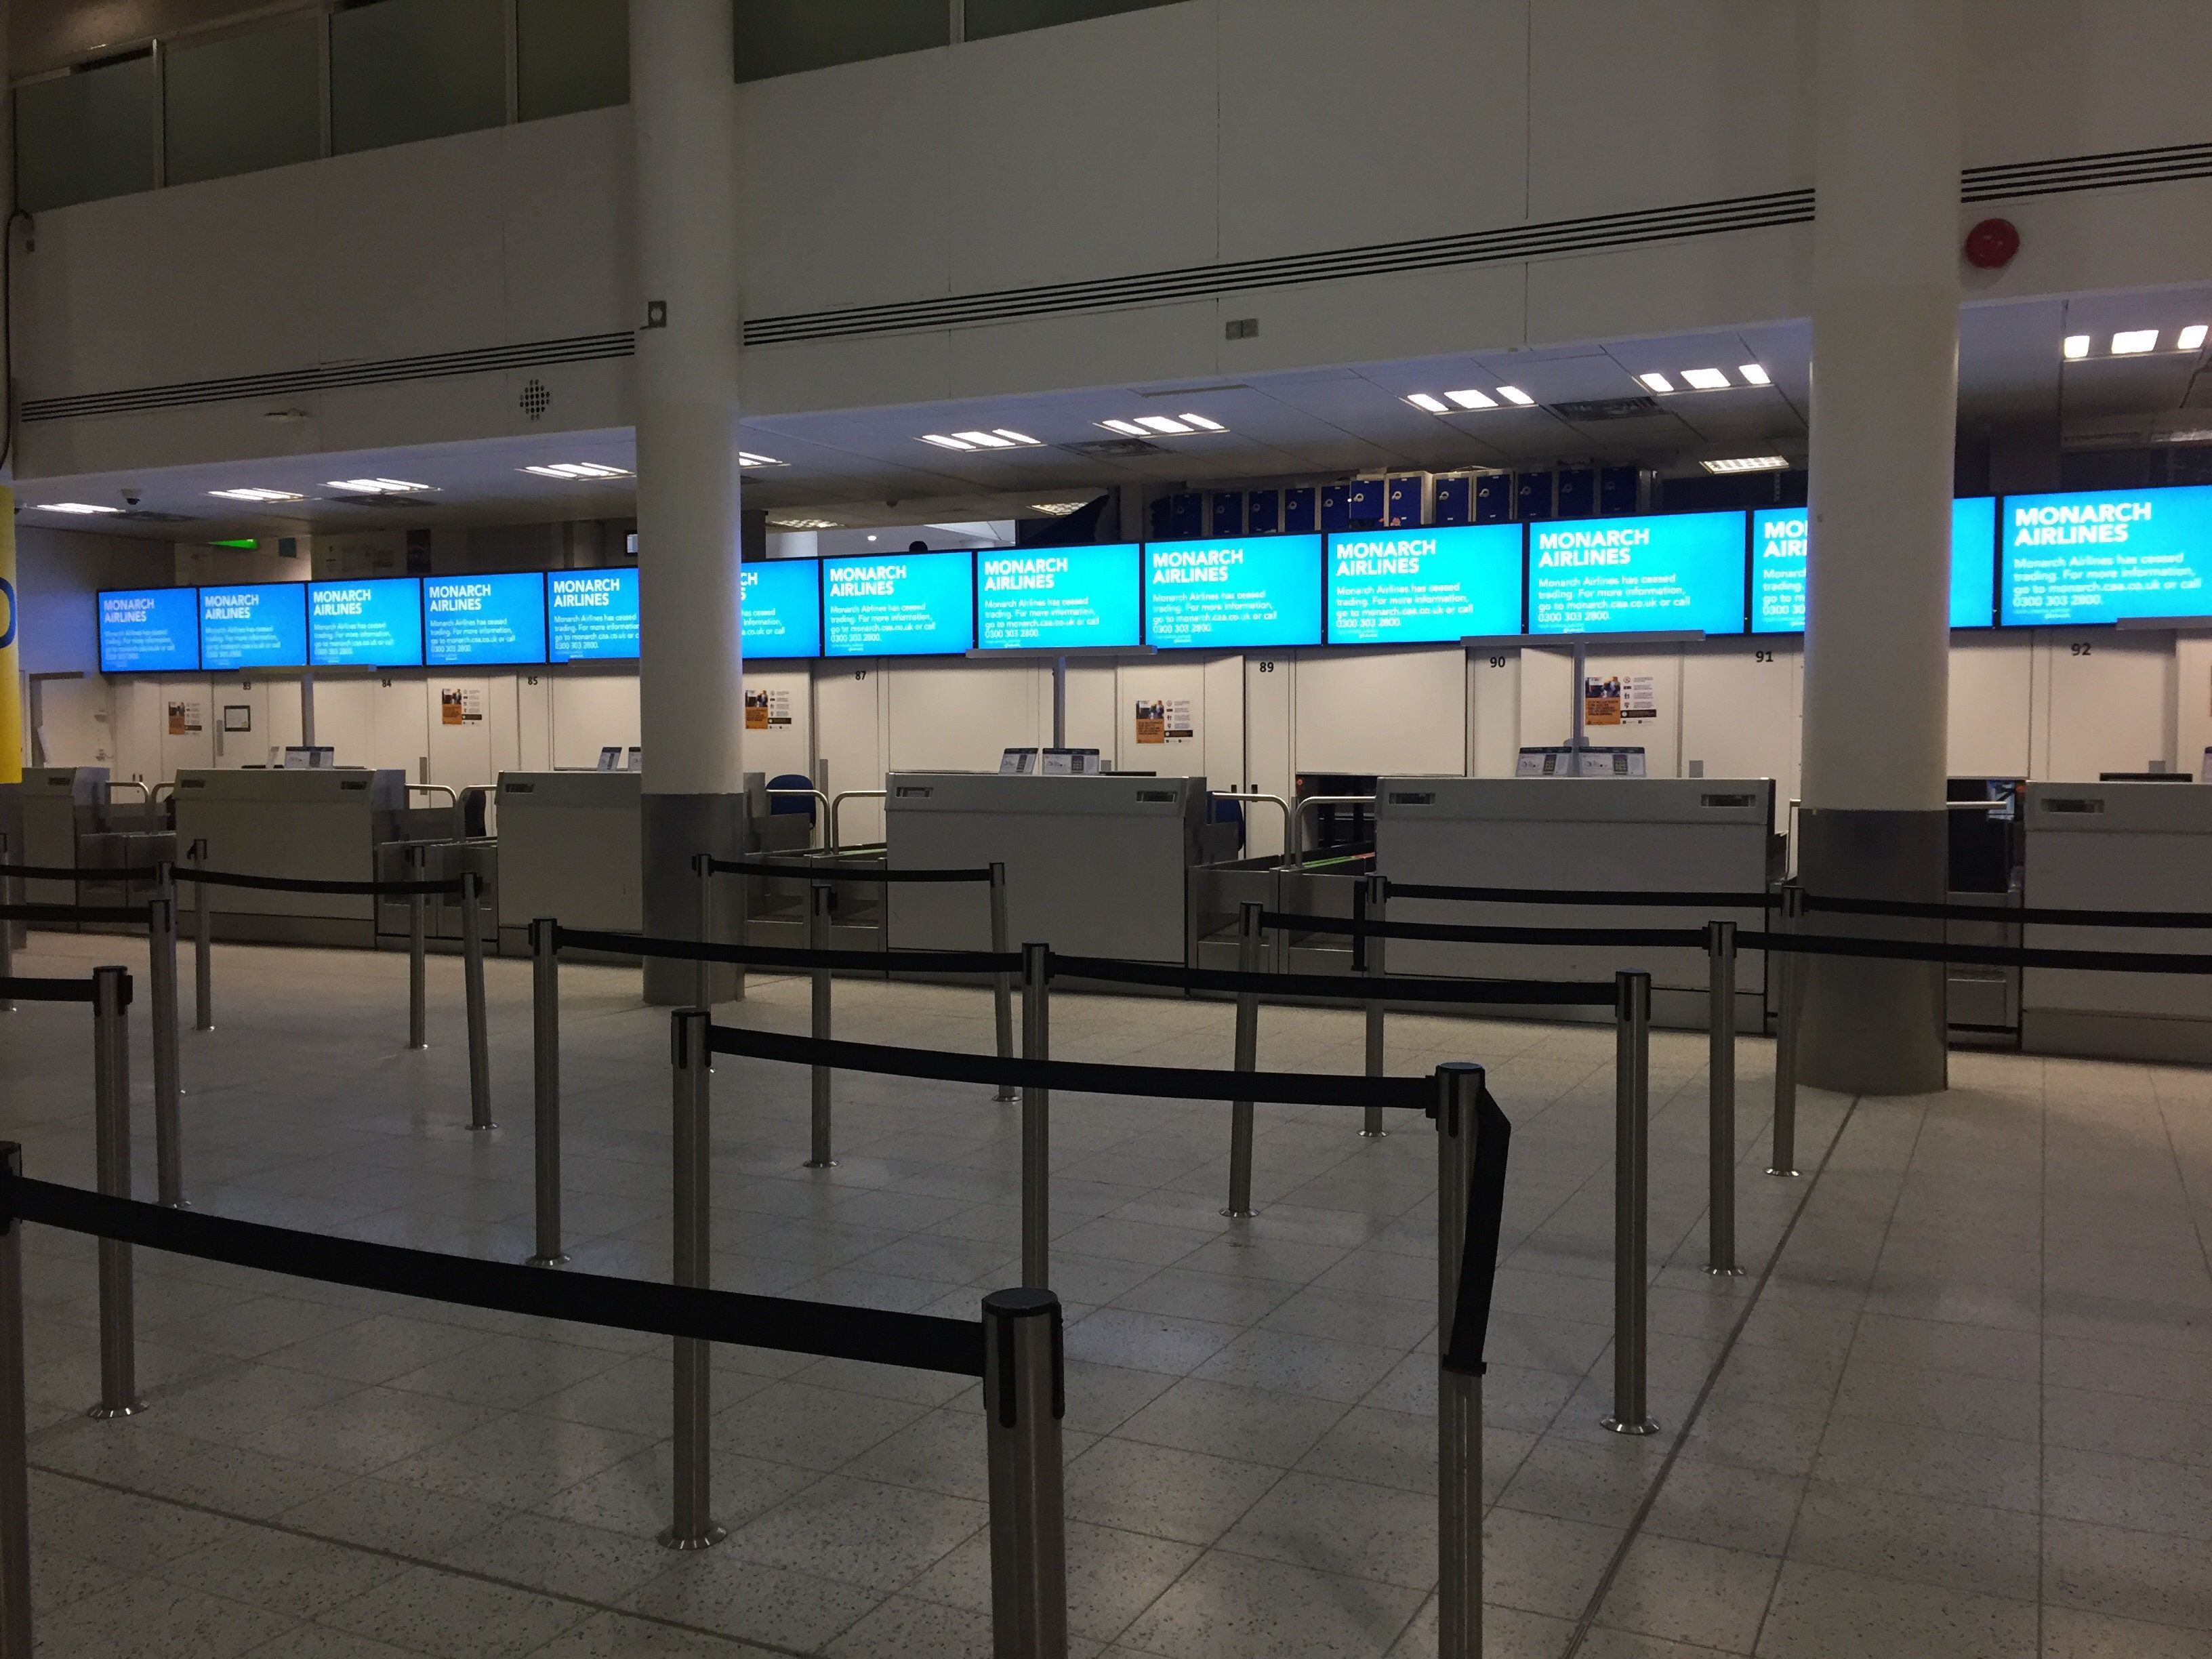 Empty Monarch desks at Gatwick Airport airport on Monday